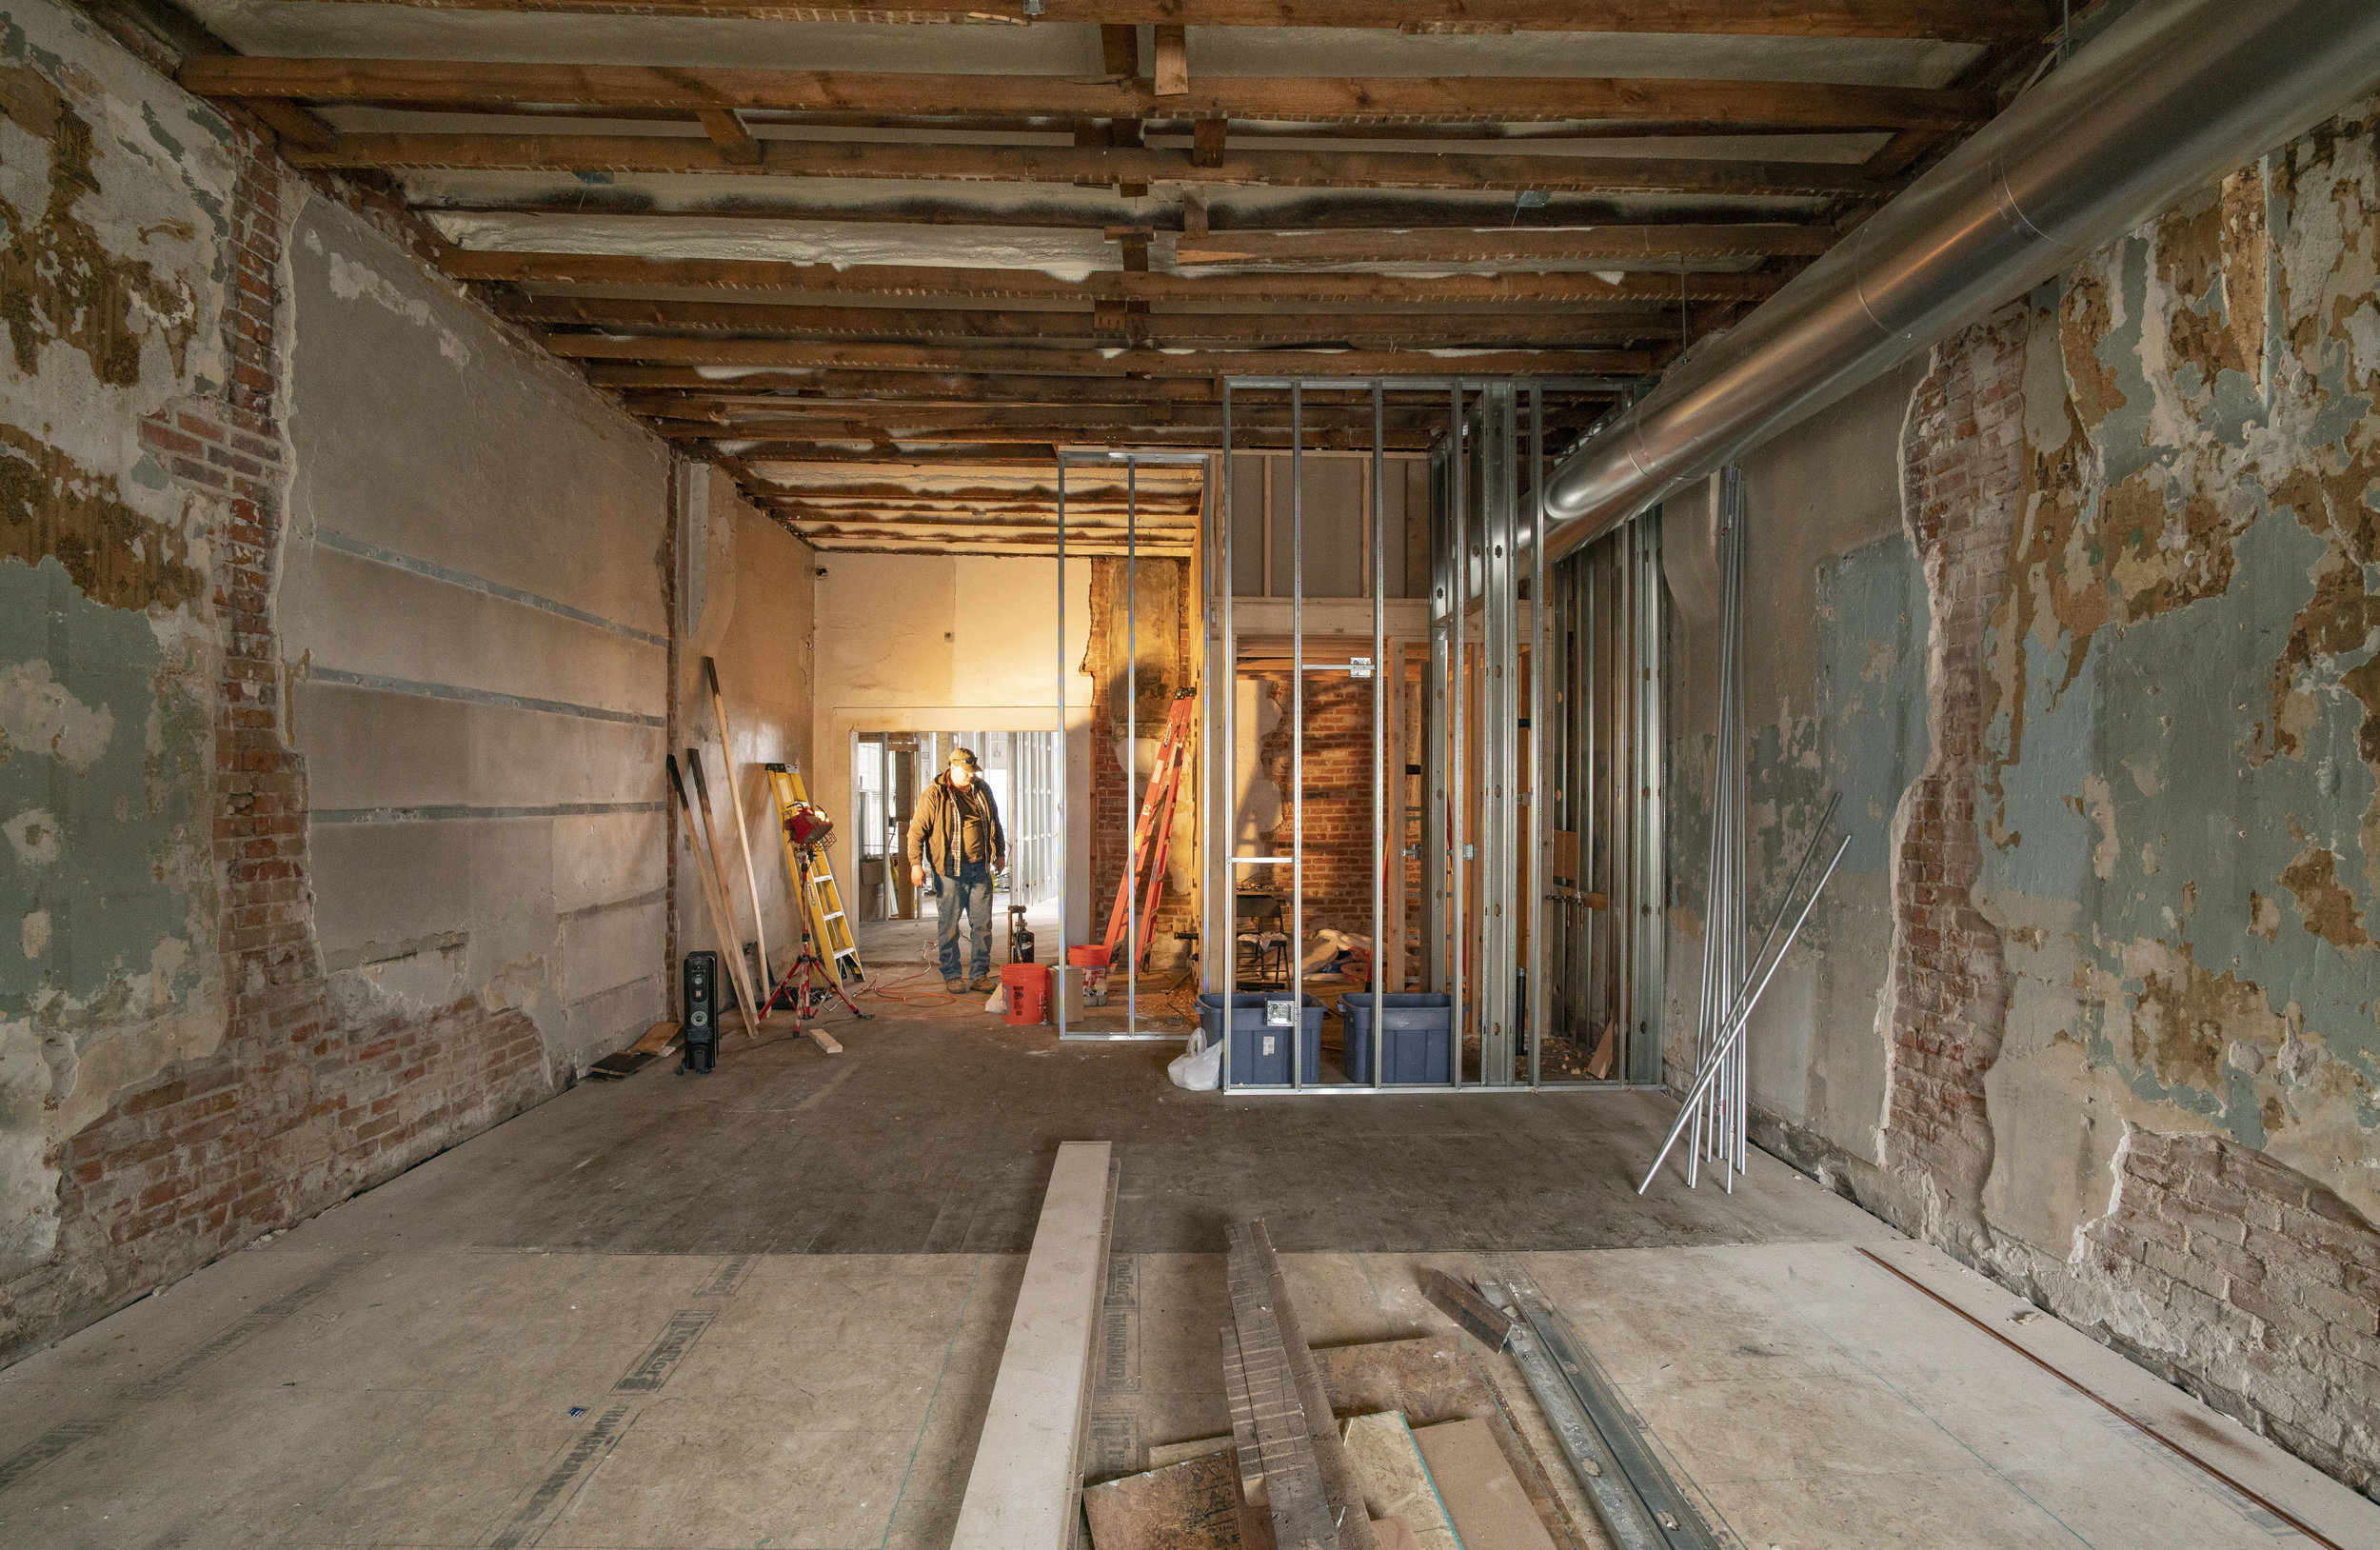 2019_0319_HodginArch_SantaFeStudio_Construction_0003.jpg